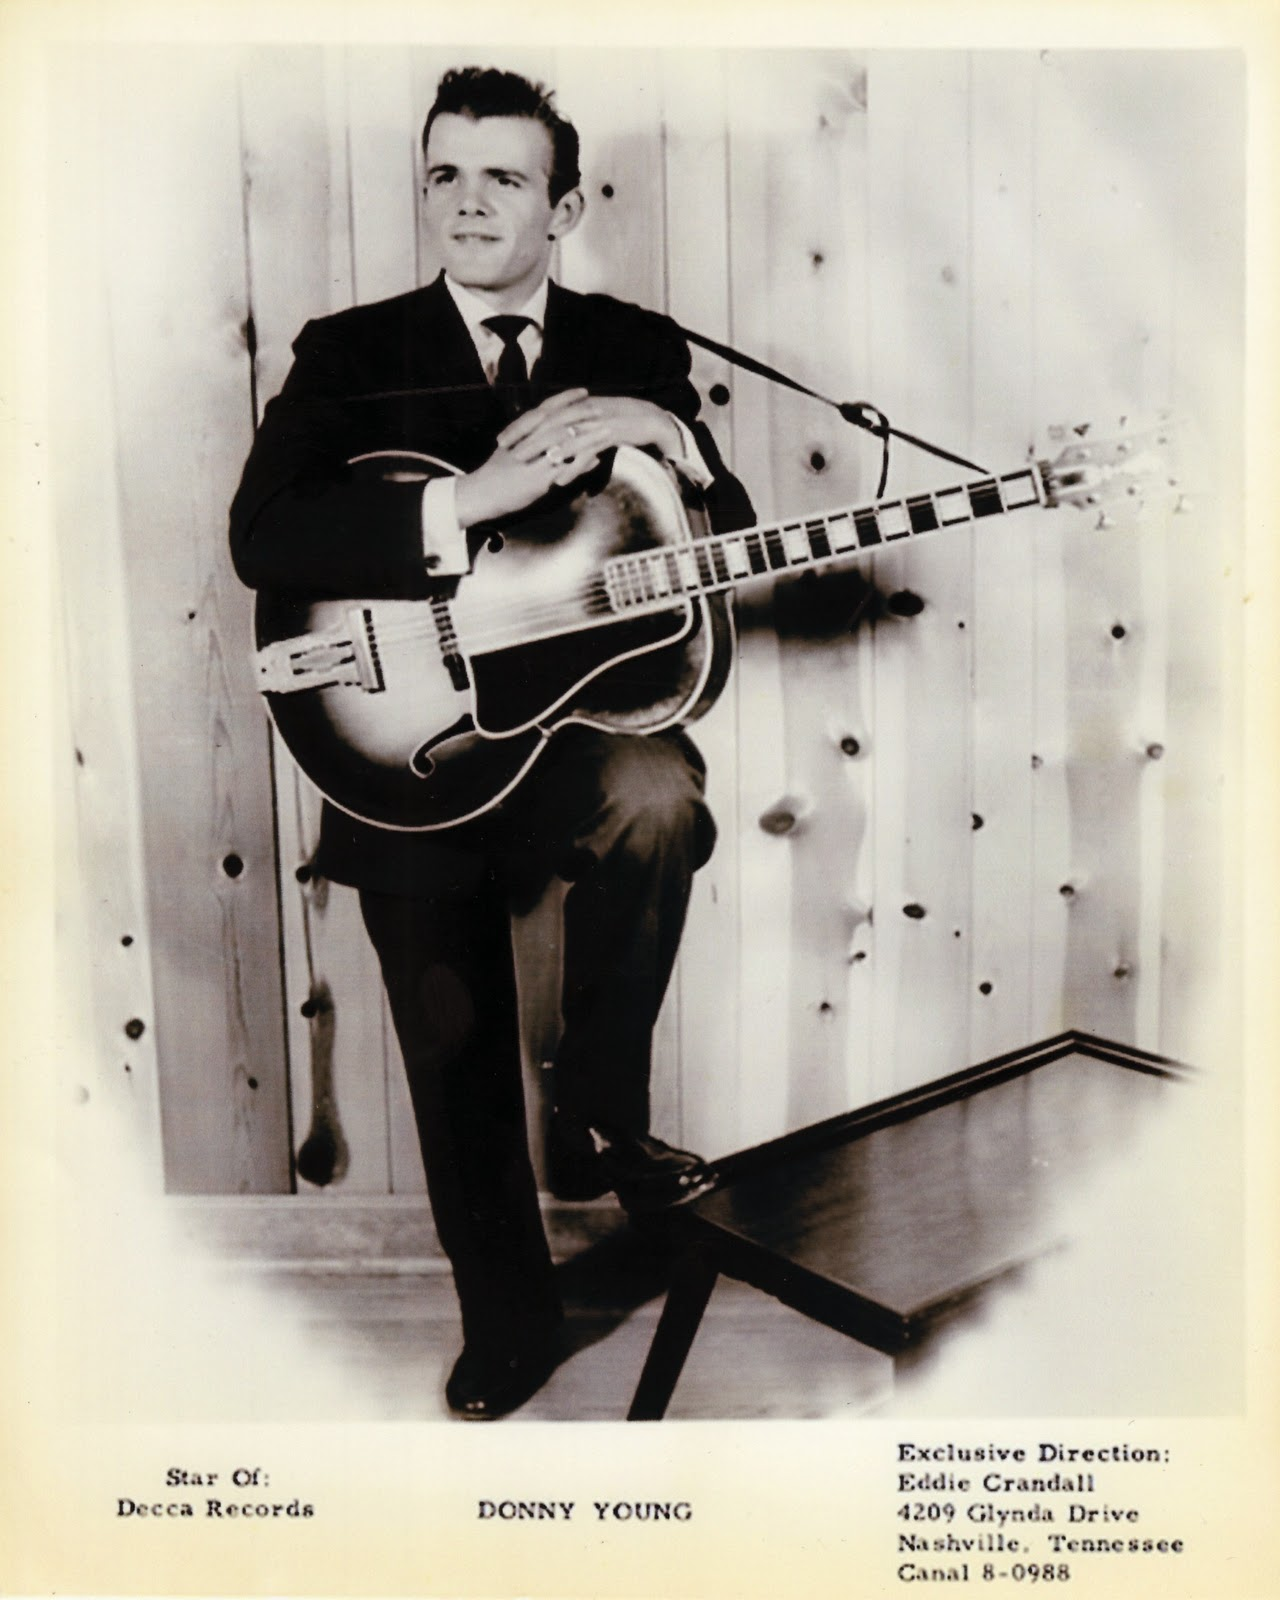 Johnny PayCheck Donny Young